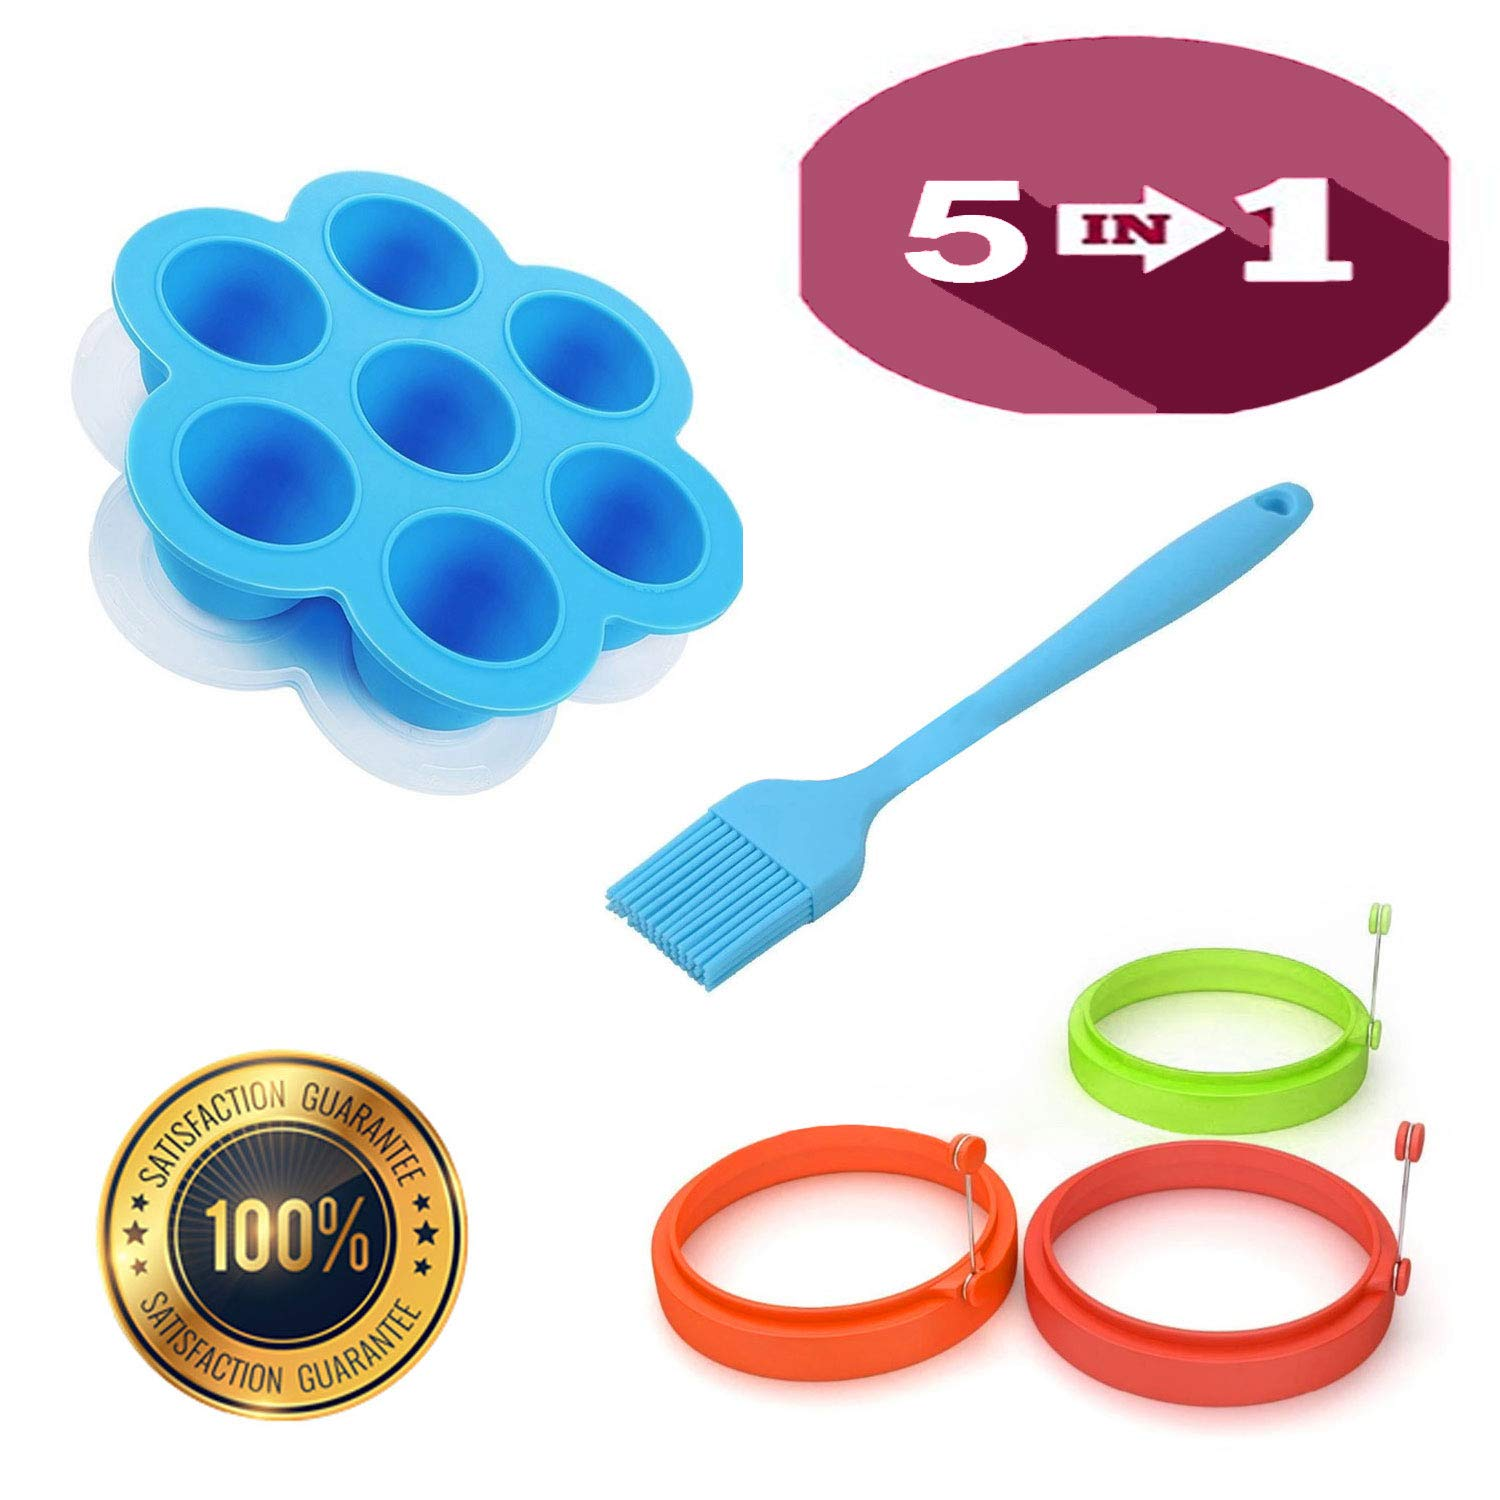 MILS 5 In Pack (1) Silicone Egg Bites Mold For Instant Pot Accessories, Fits 5,6,8 qt Pressure Cooker,Freezer Ice Cube Trays, Egg Poacher Ring, (3) Silicone Egg Rings Non Stick With (1) Silicone Brush